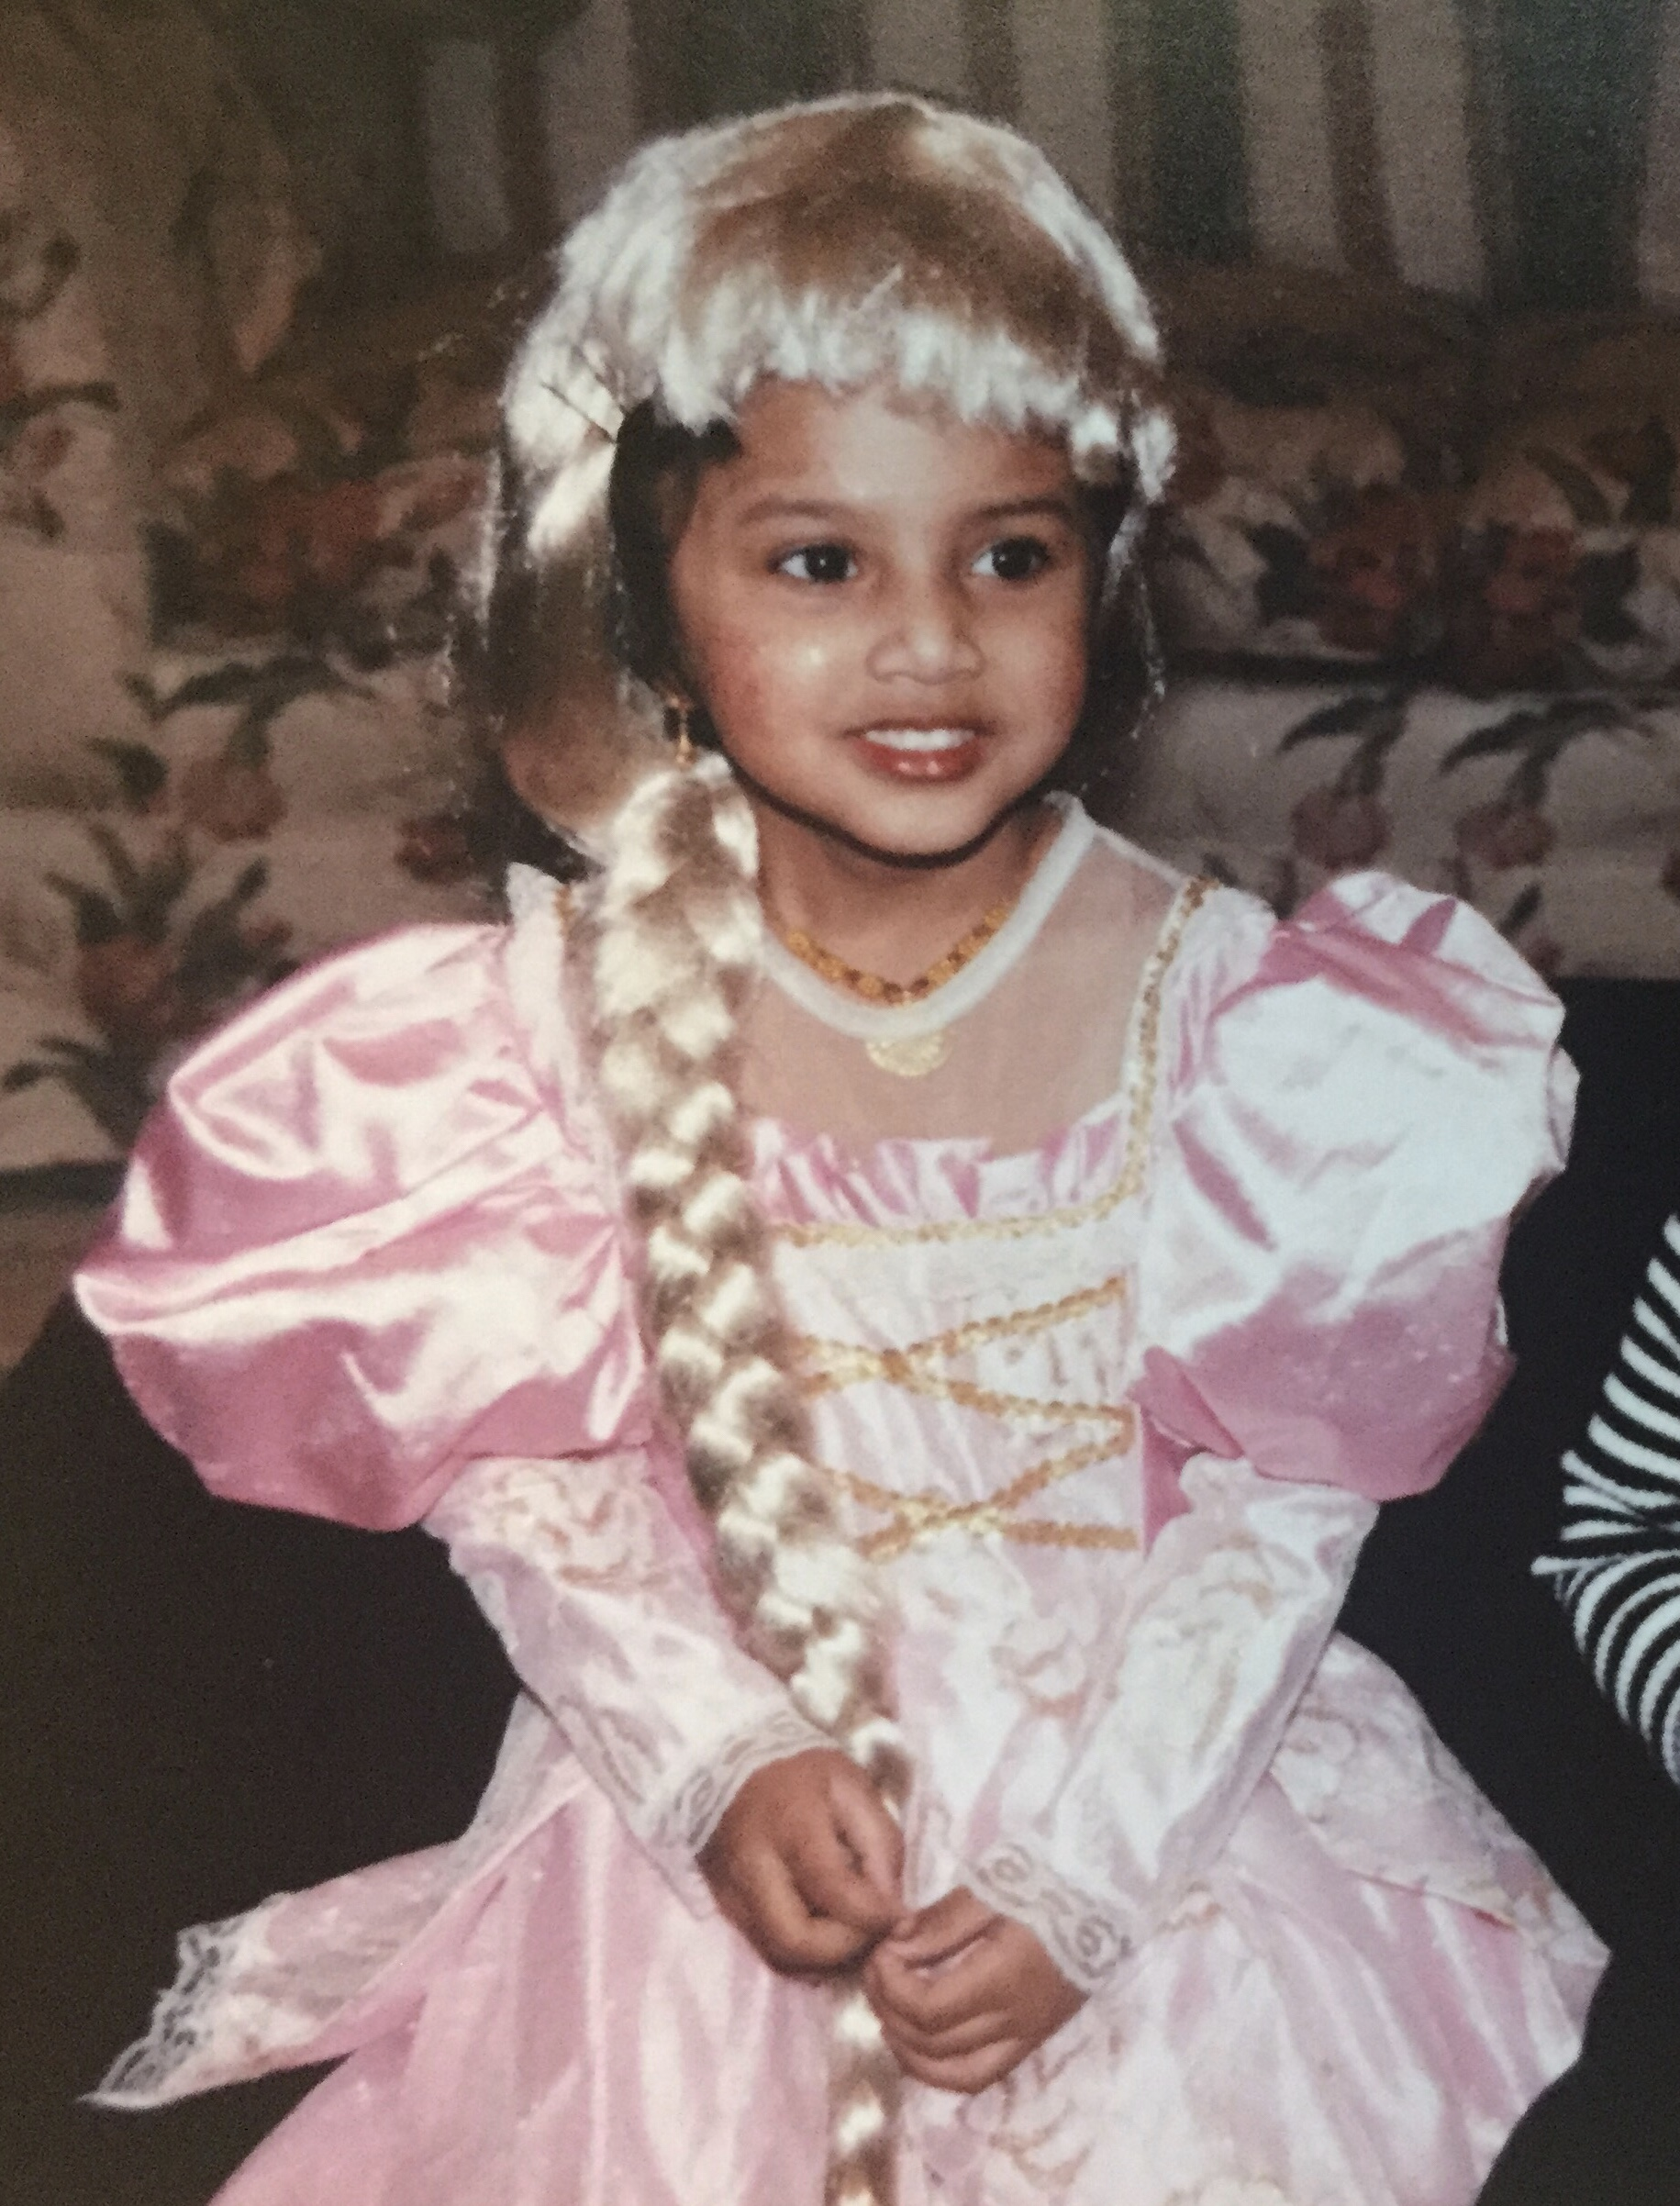 f61d32fdd8 Stock costume? Check. Hair isn't a racial stereotype but central to the  character? Check. My brown self dressed as a white princess? Totally ok.